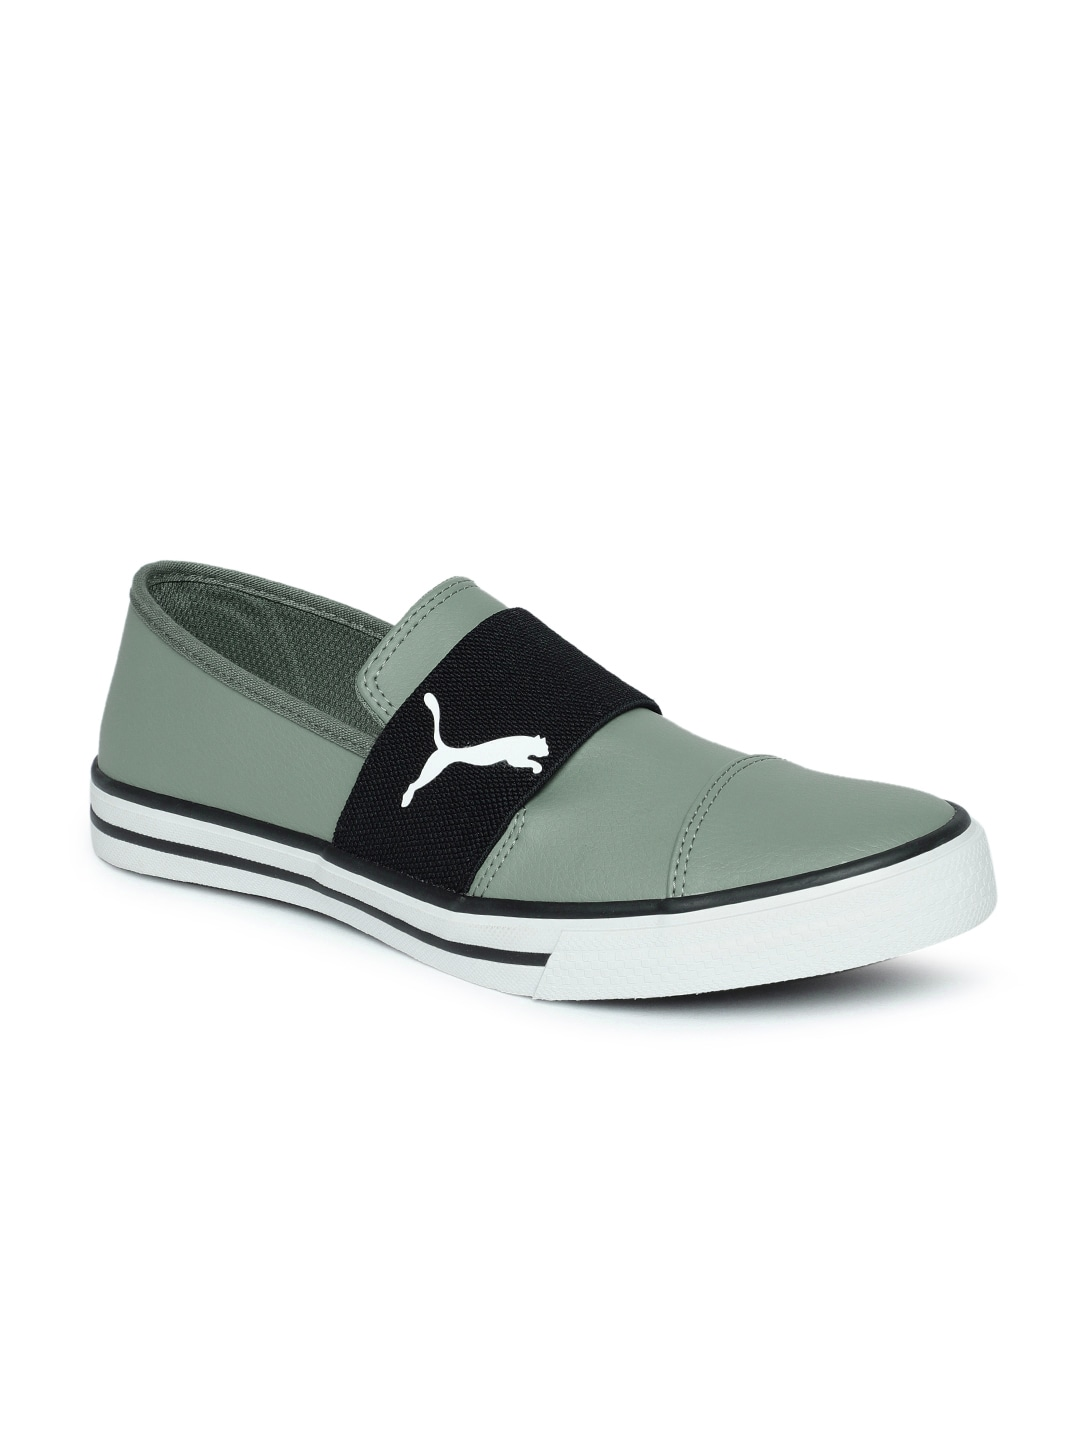 Puma Flat Shoes For Women - Buy Puma Flat Shoes For Women online in India a53528be5